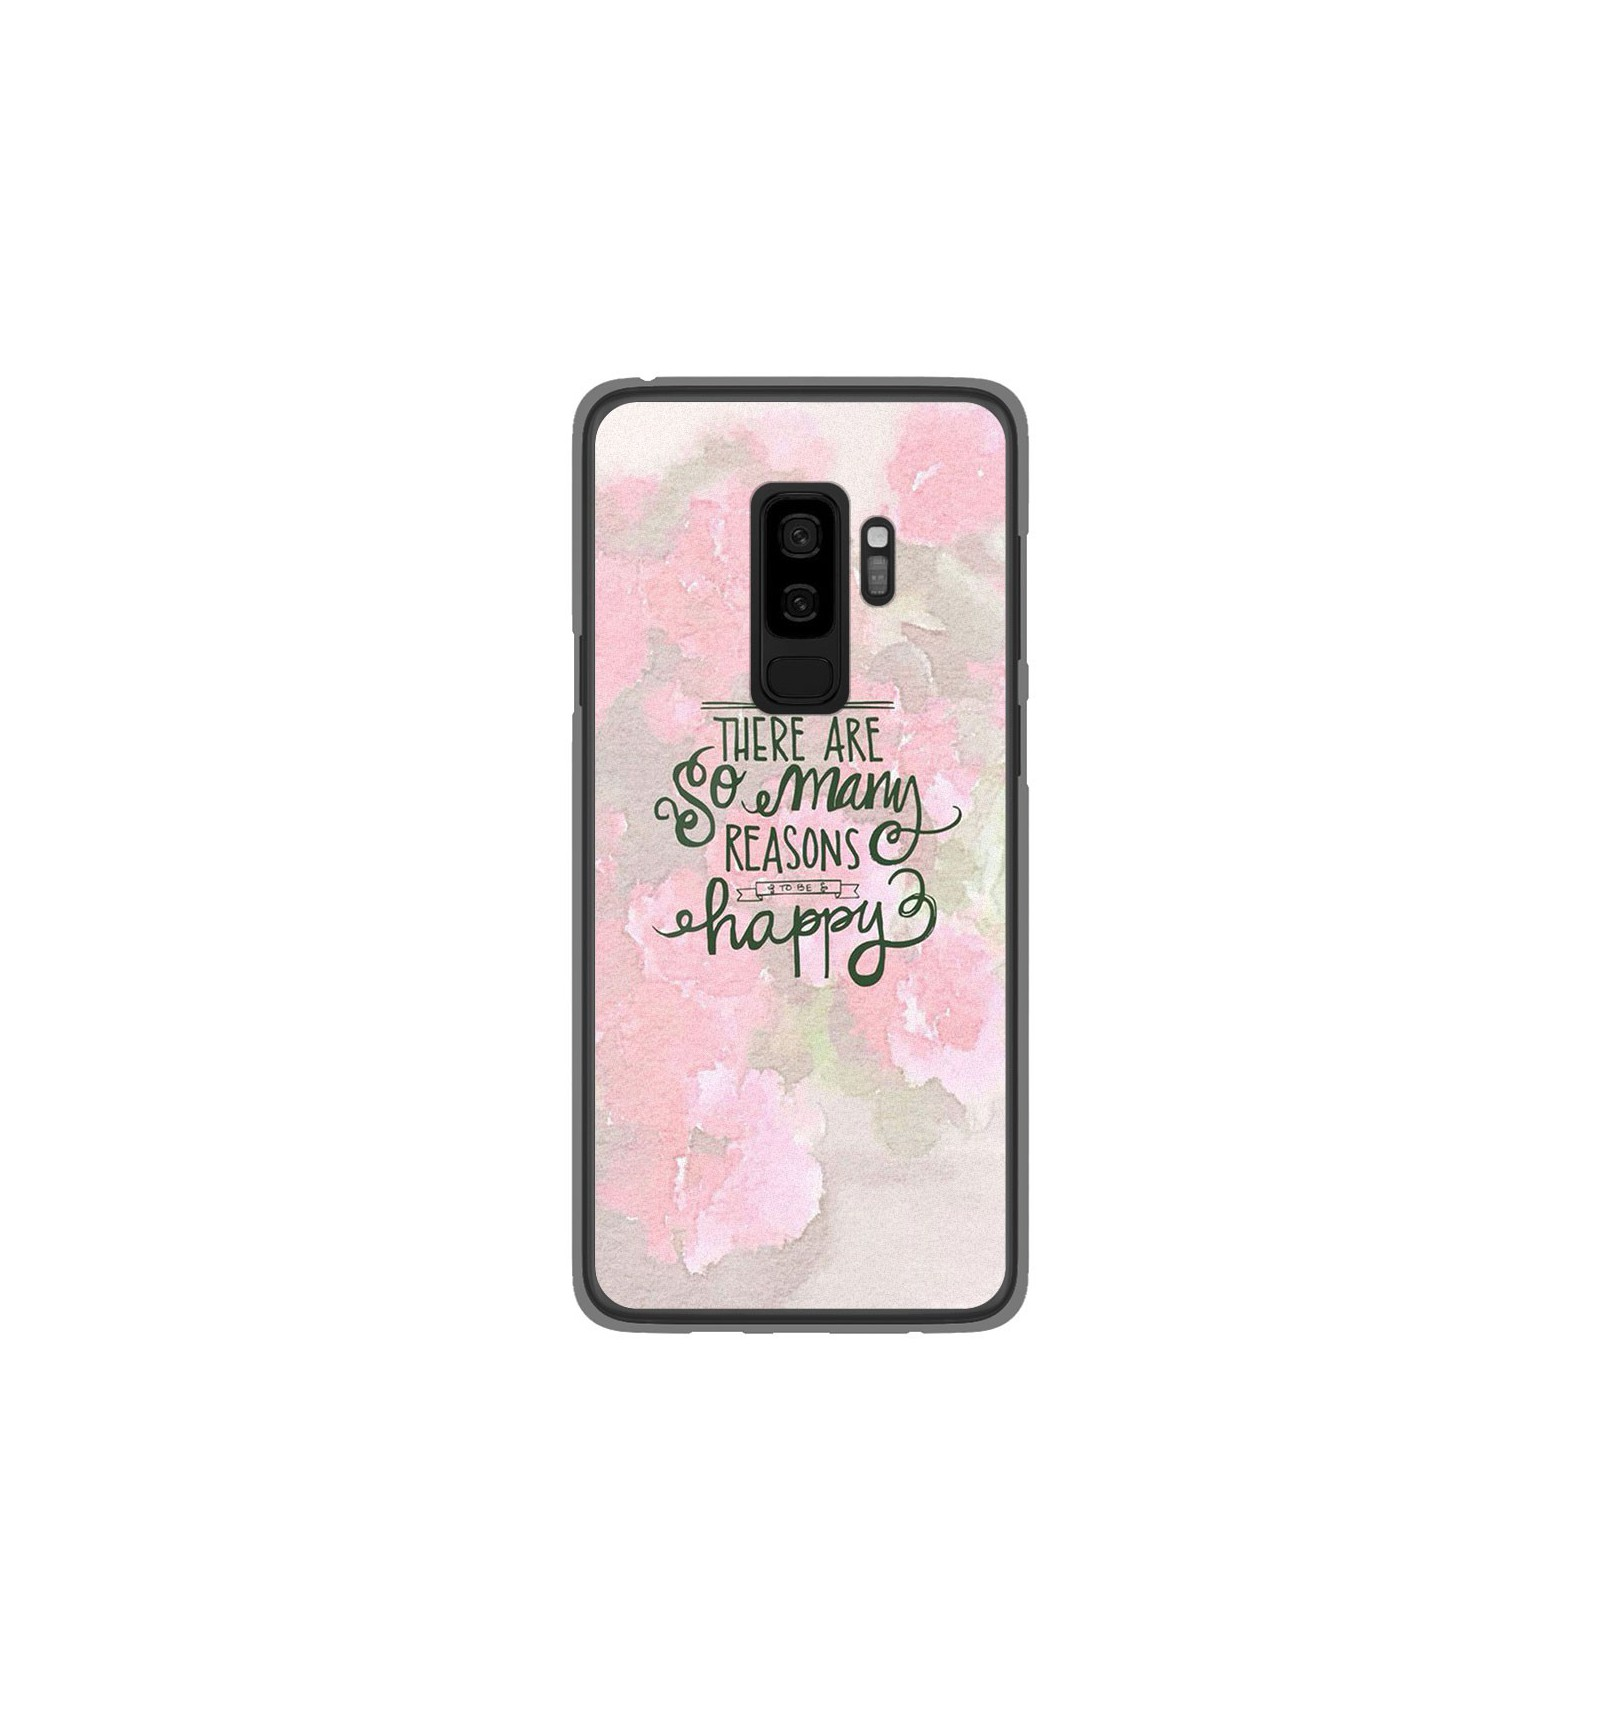 coque samsung s9 plus original